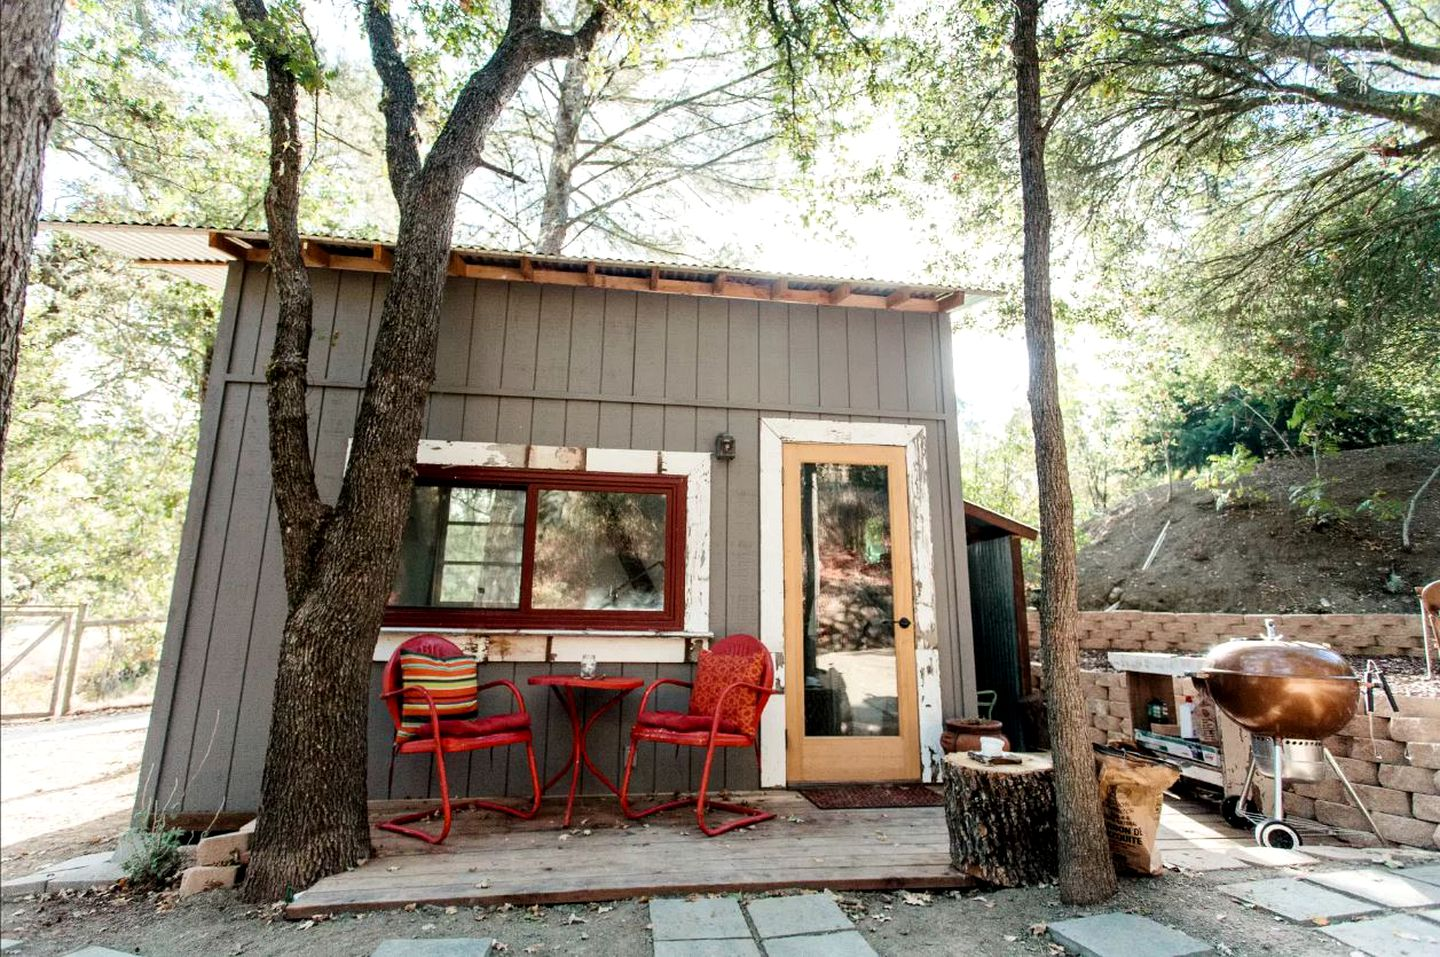 Rustic tiny house for rent surrounded by trees on a farm in Atascadero, California.